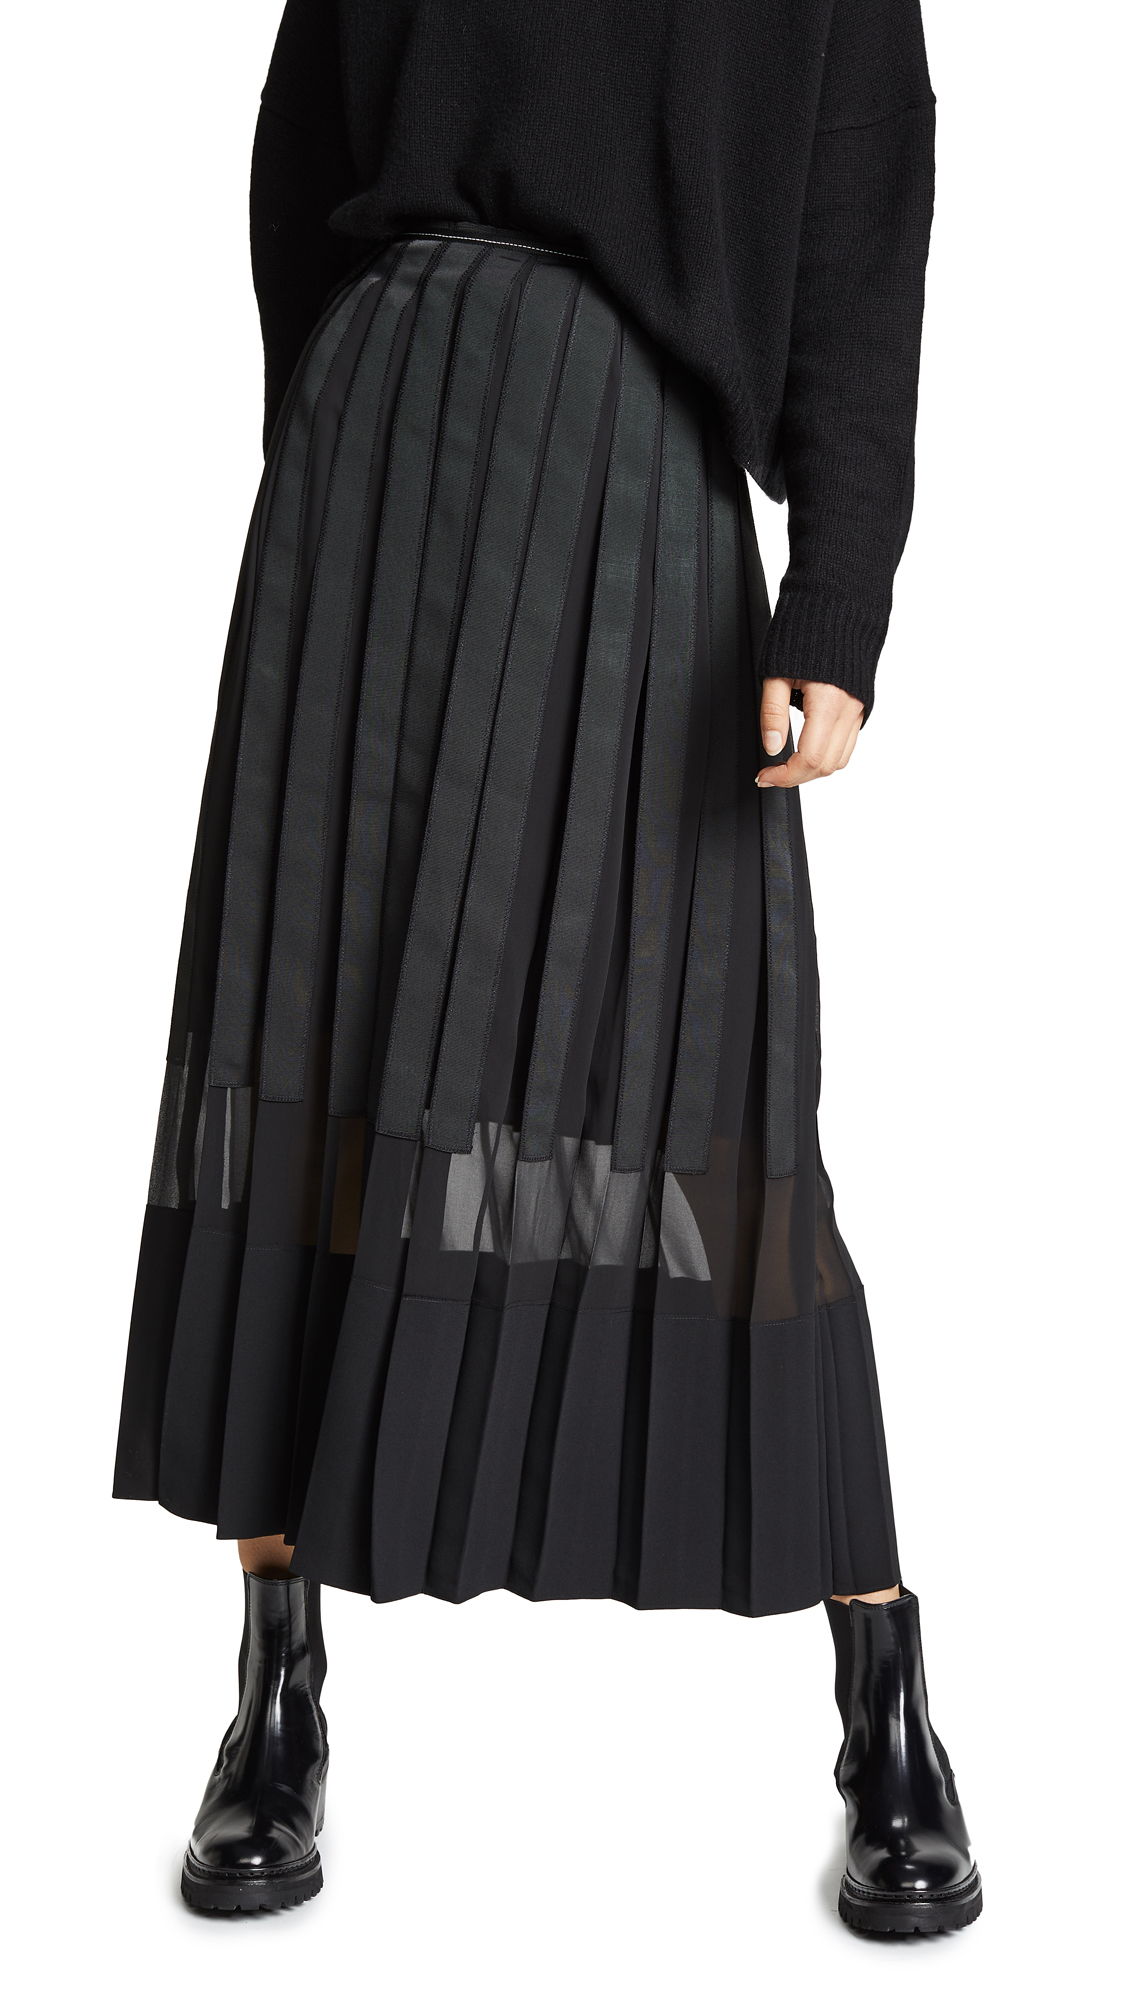 3.1 Phillip Lim Grosgrain Ribbon Pleated Skirt In Black  13d08ba18